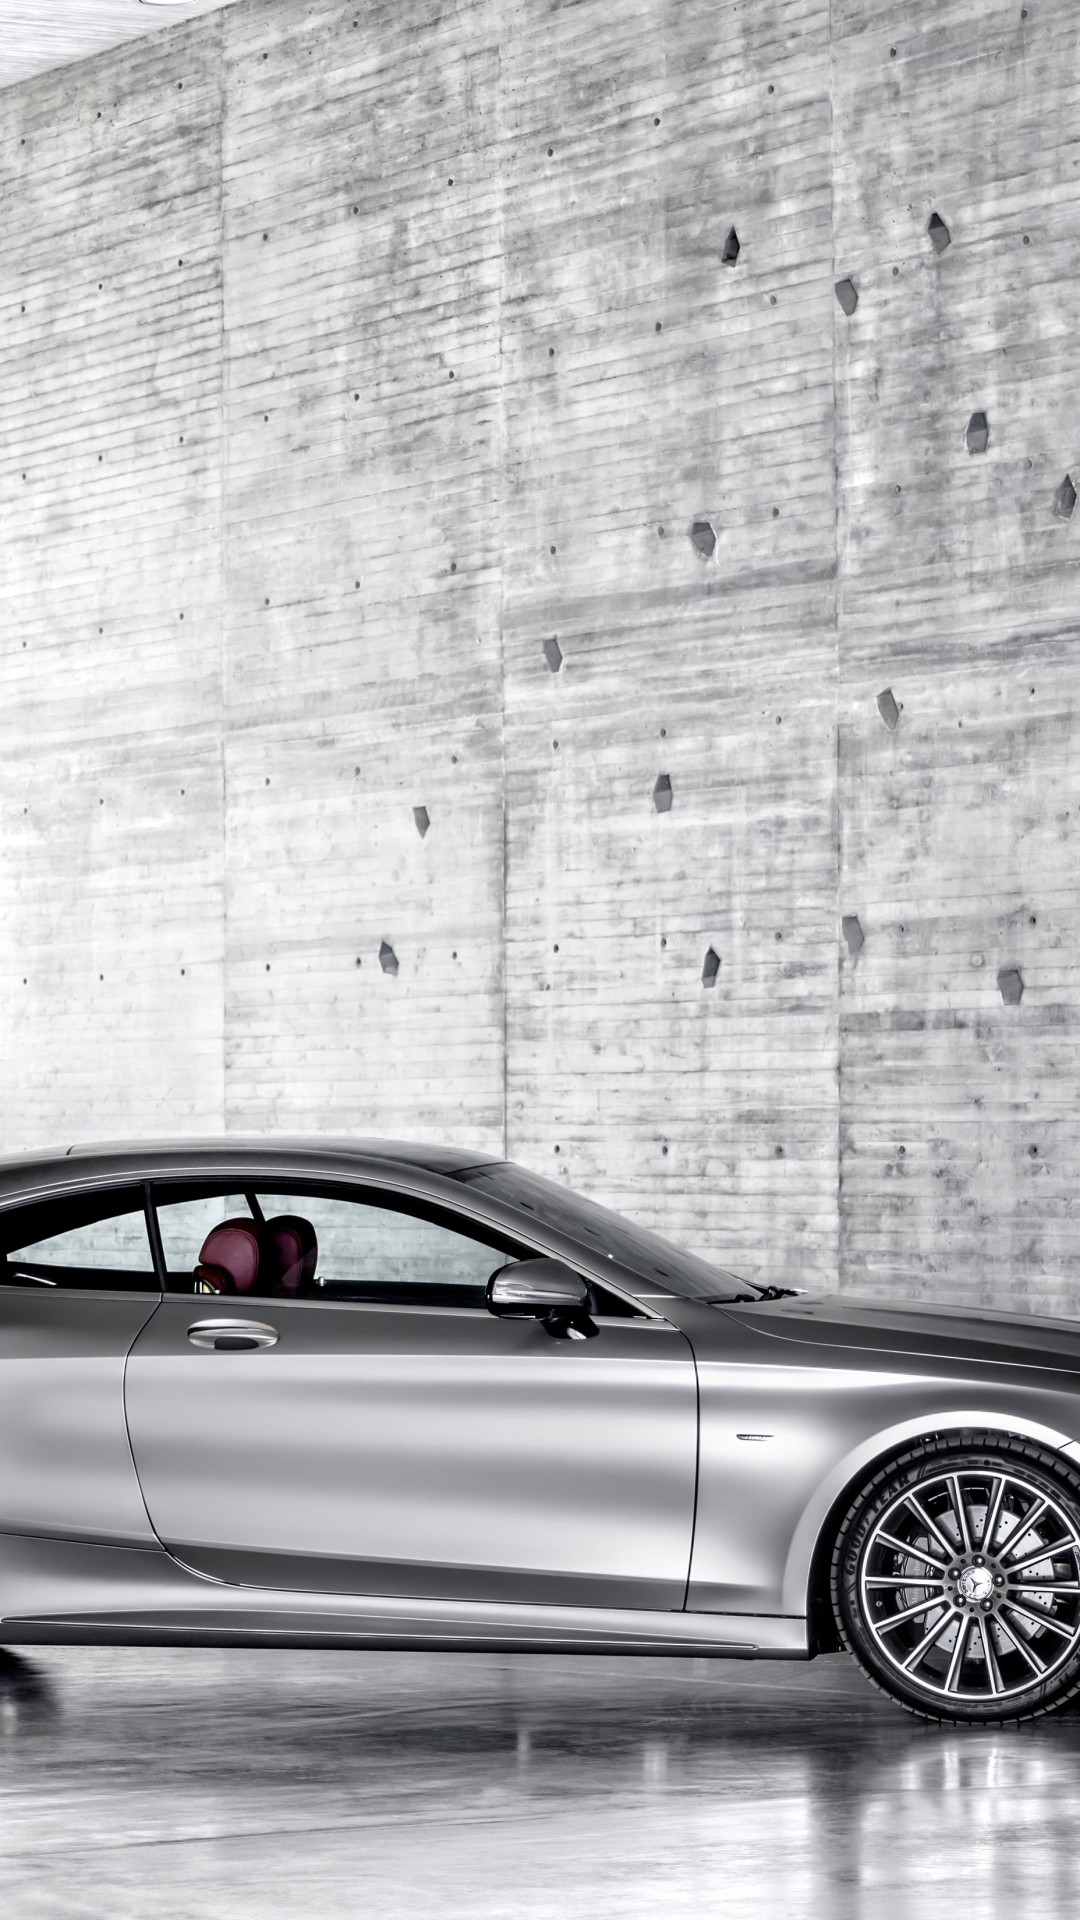 2015 Mercedes-Benz S-Class Coupe Wallpaper for SAMSUNG Galaxy Note 3